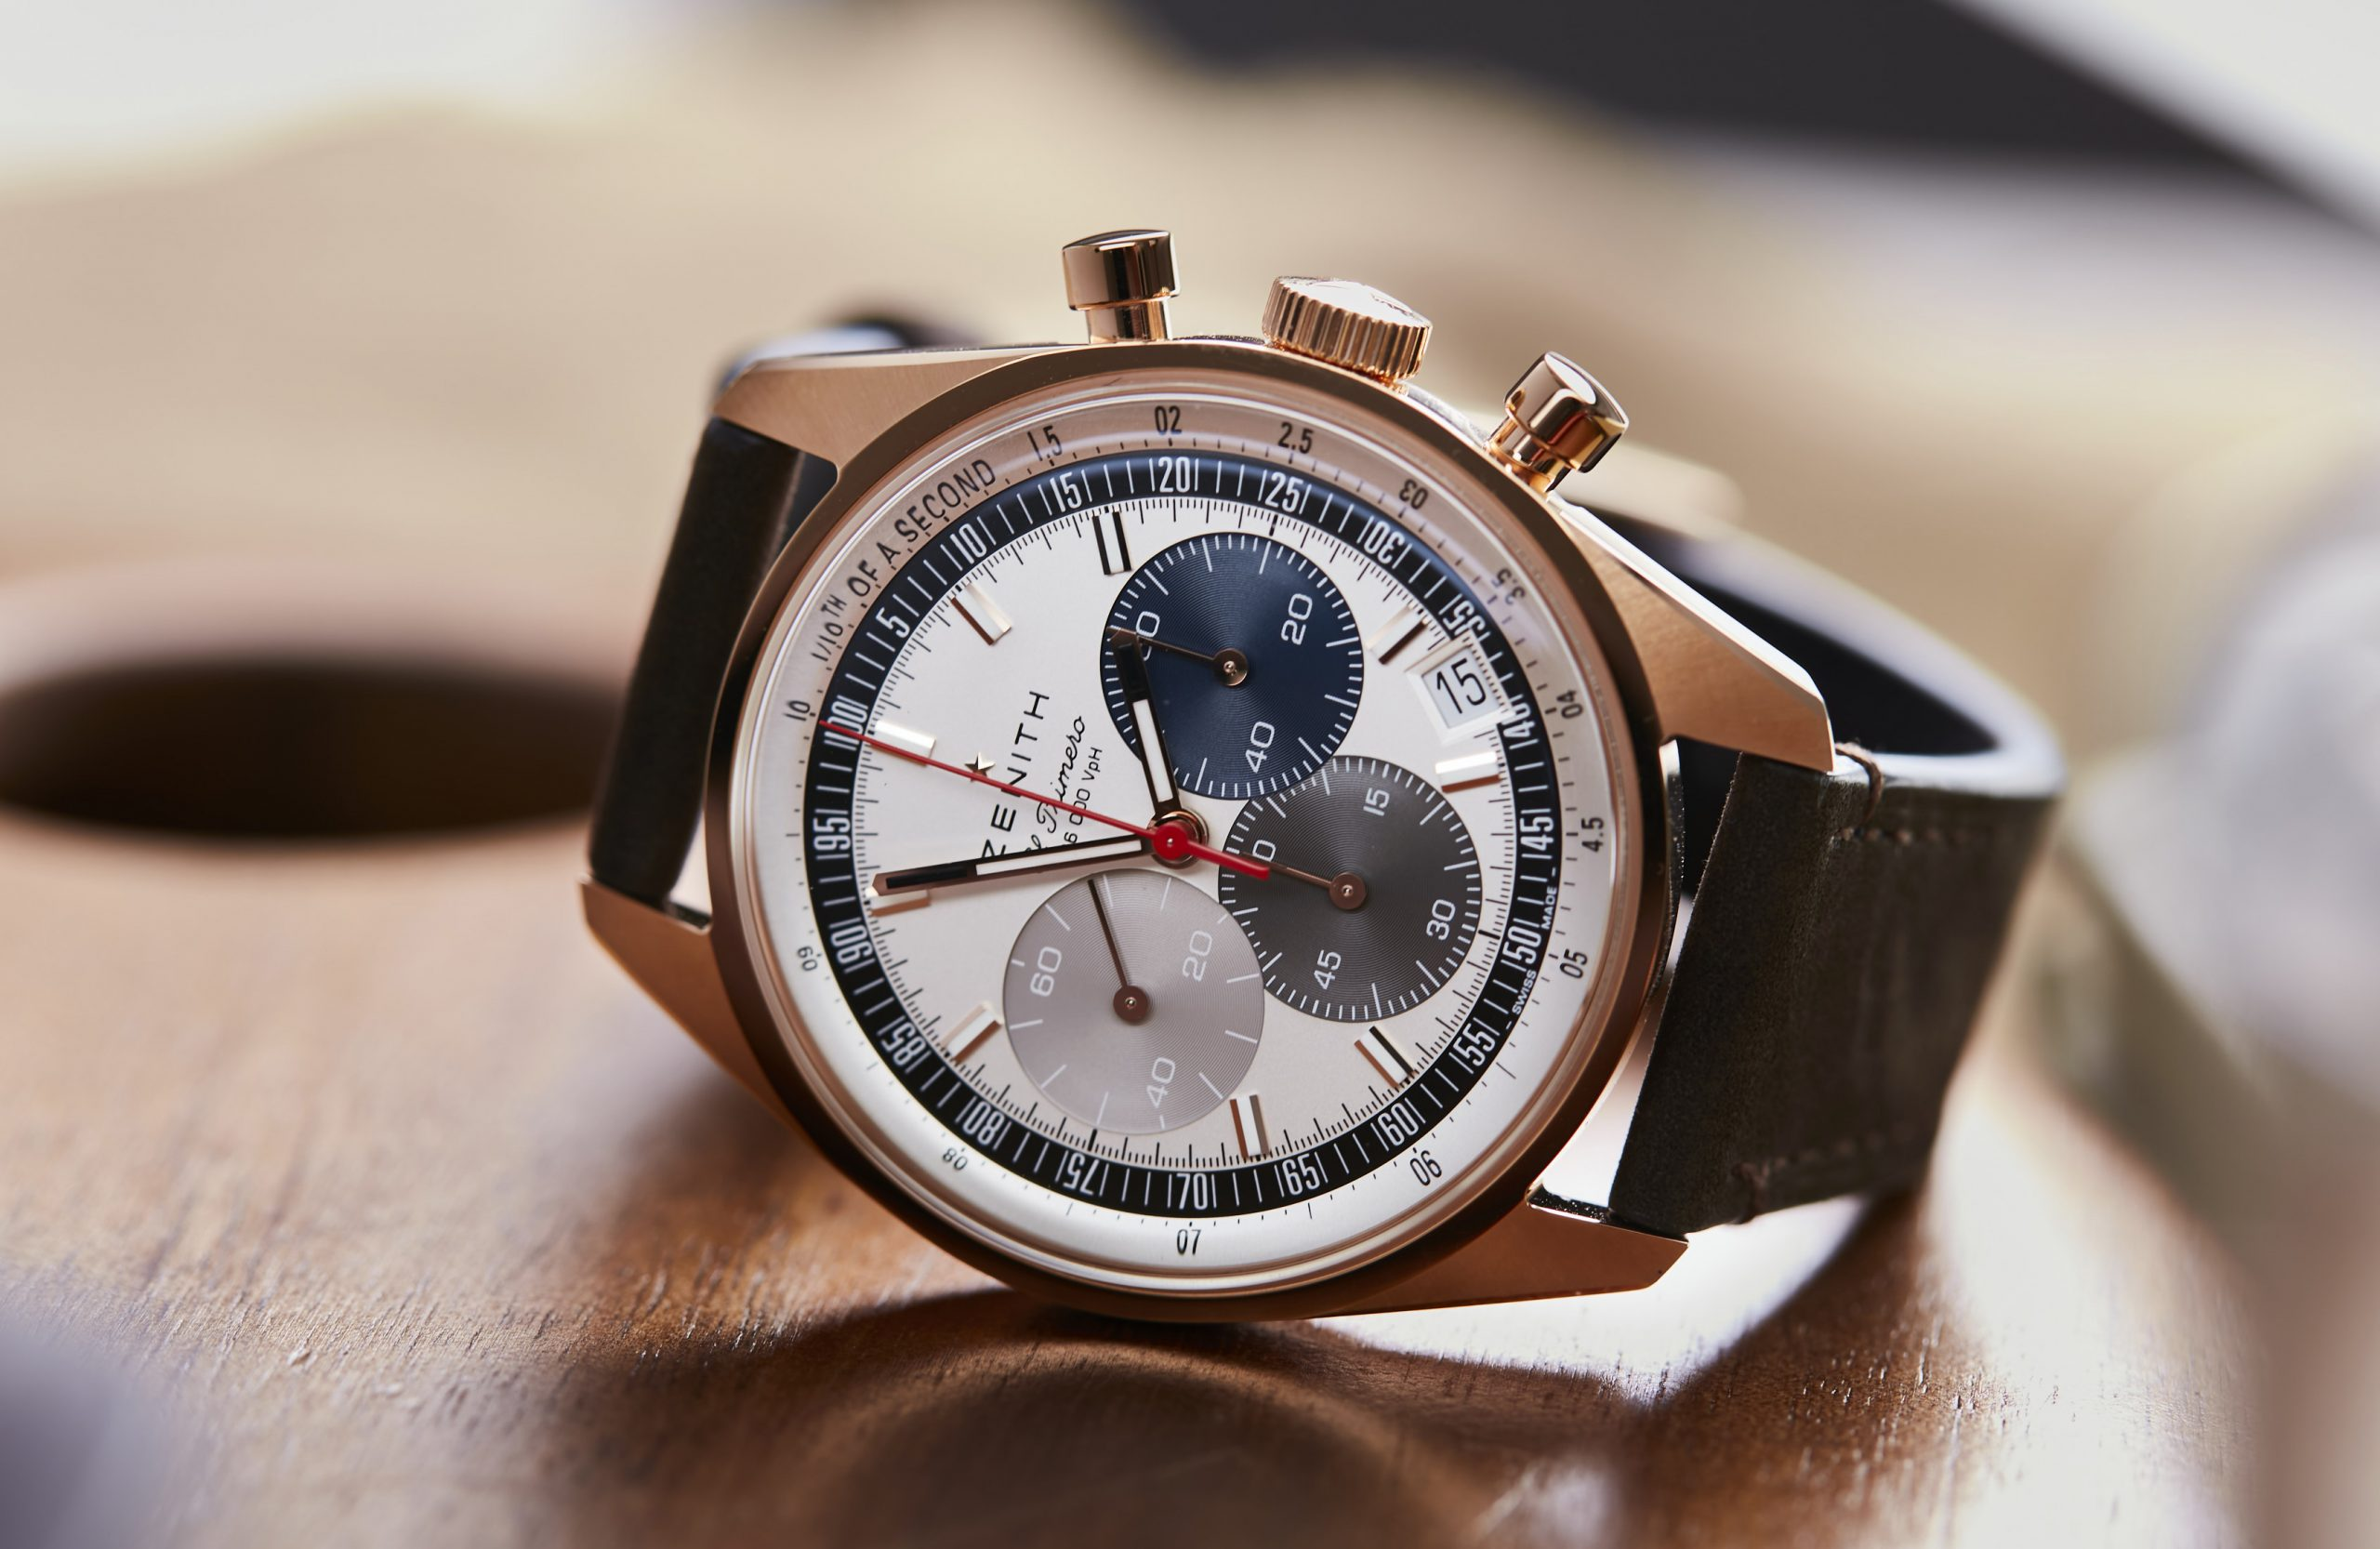 HANDS-ON: The Zenith Chronomaster Original Collection offers vintage perfection on a 38mm dial